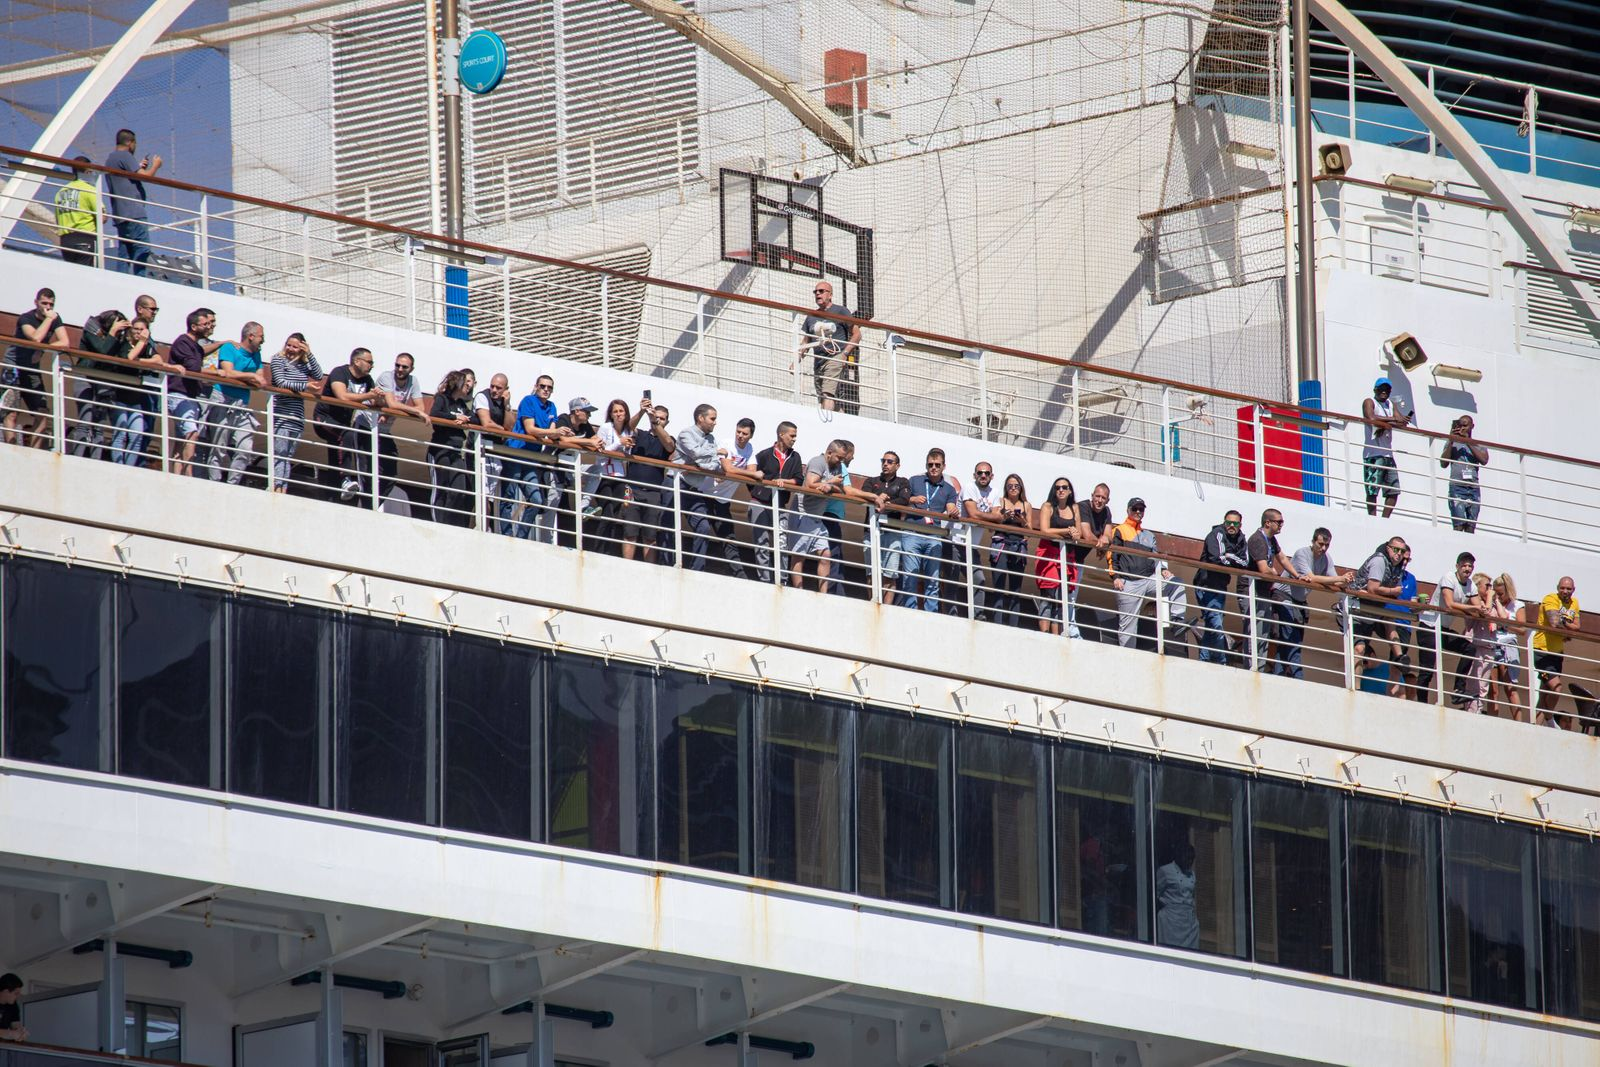 Carnival Breeze arrived with 93 Croatian sailors 26.05.2020., Dubrovnik, Dubrovnik - Although the arrival is not planned